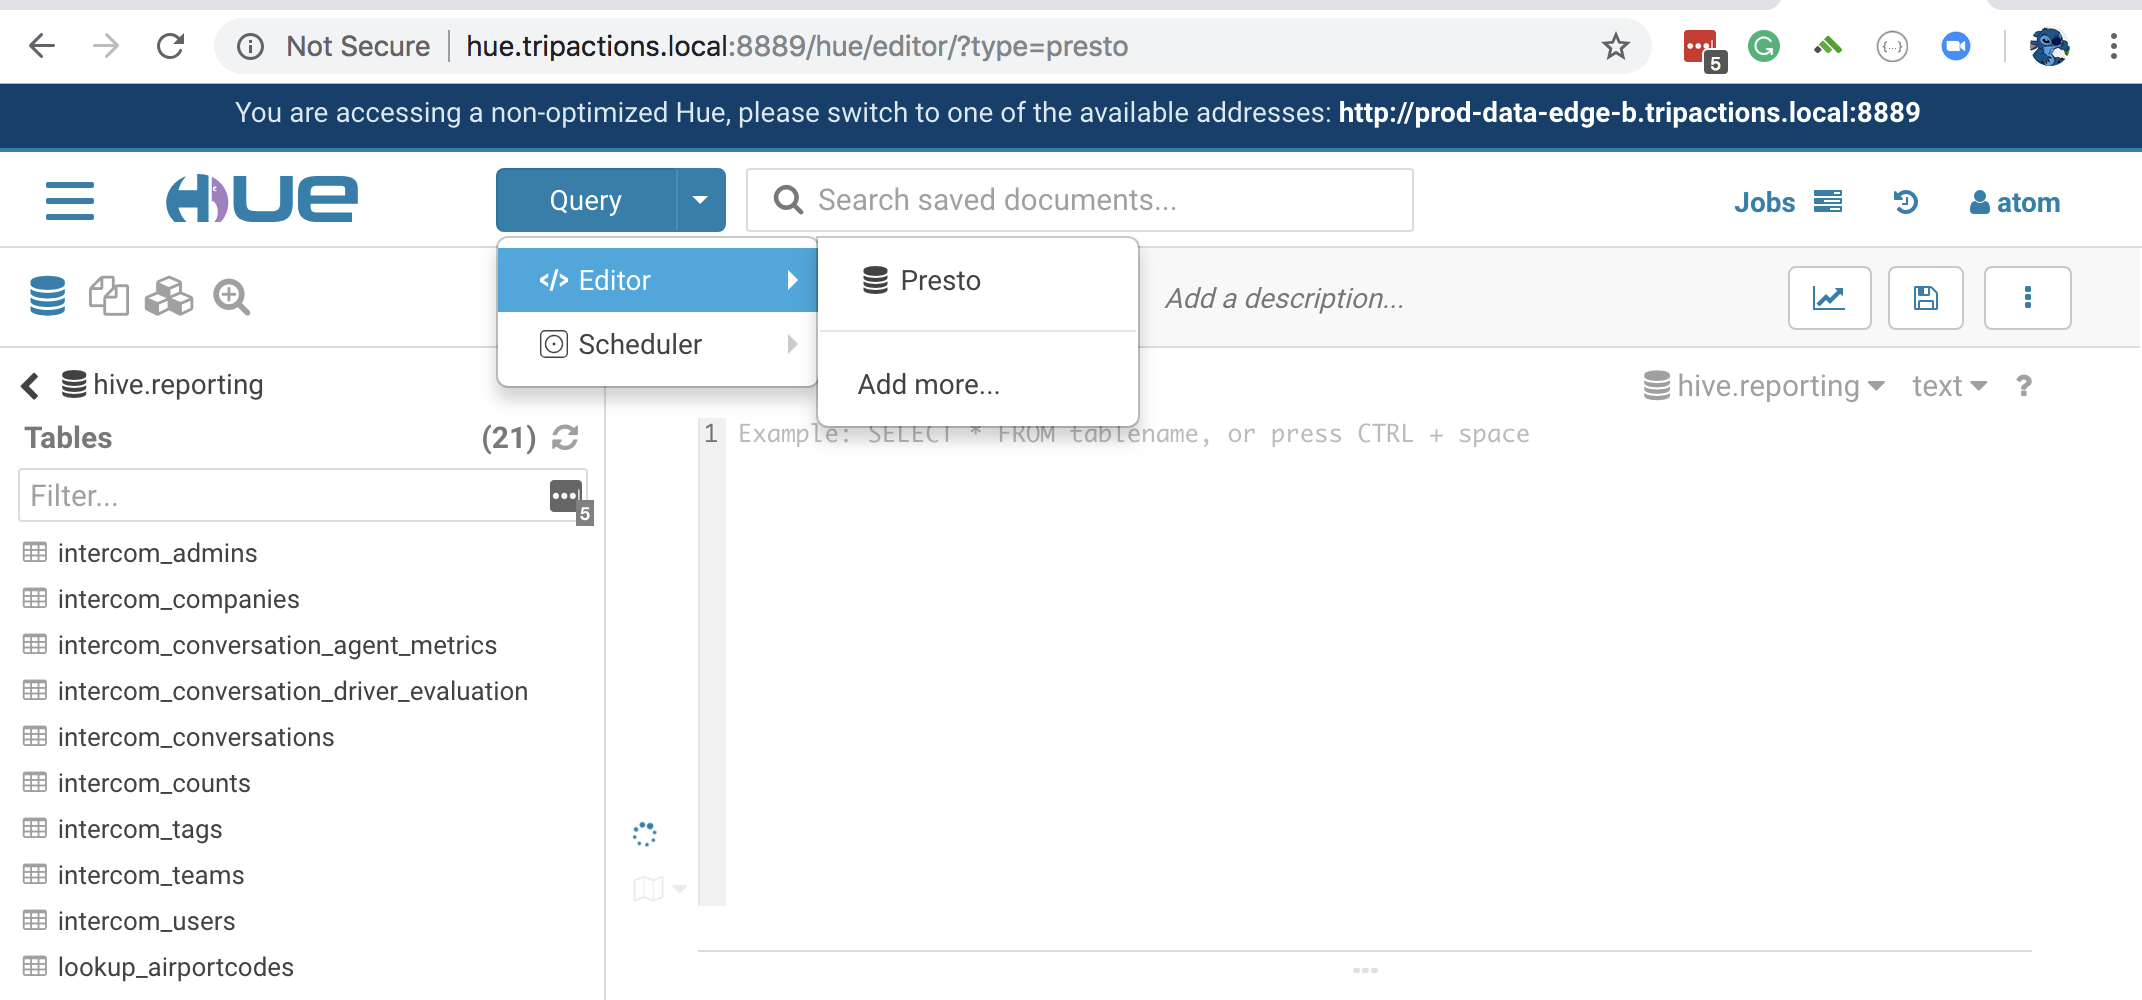 Solved: Hive not available in HUE - Cloudera Community